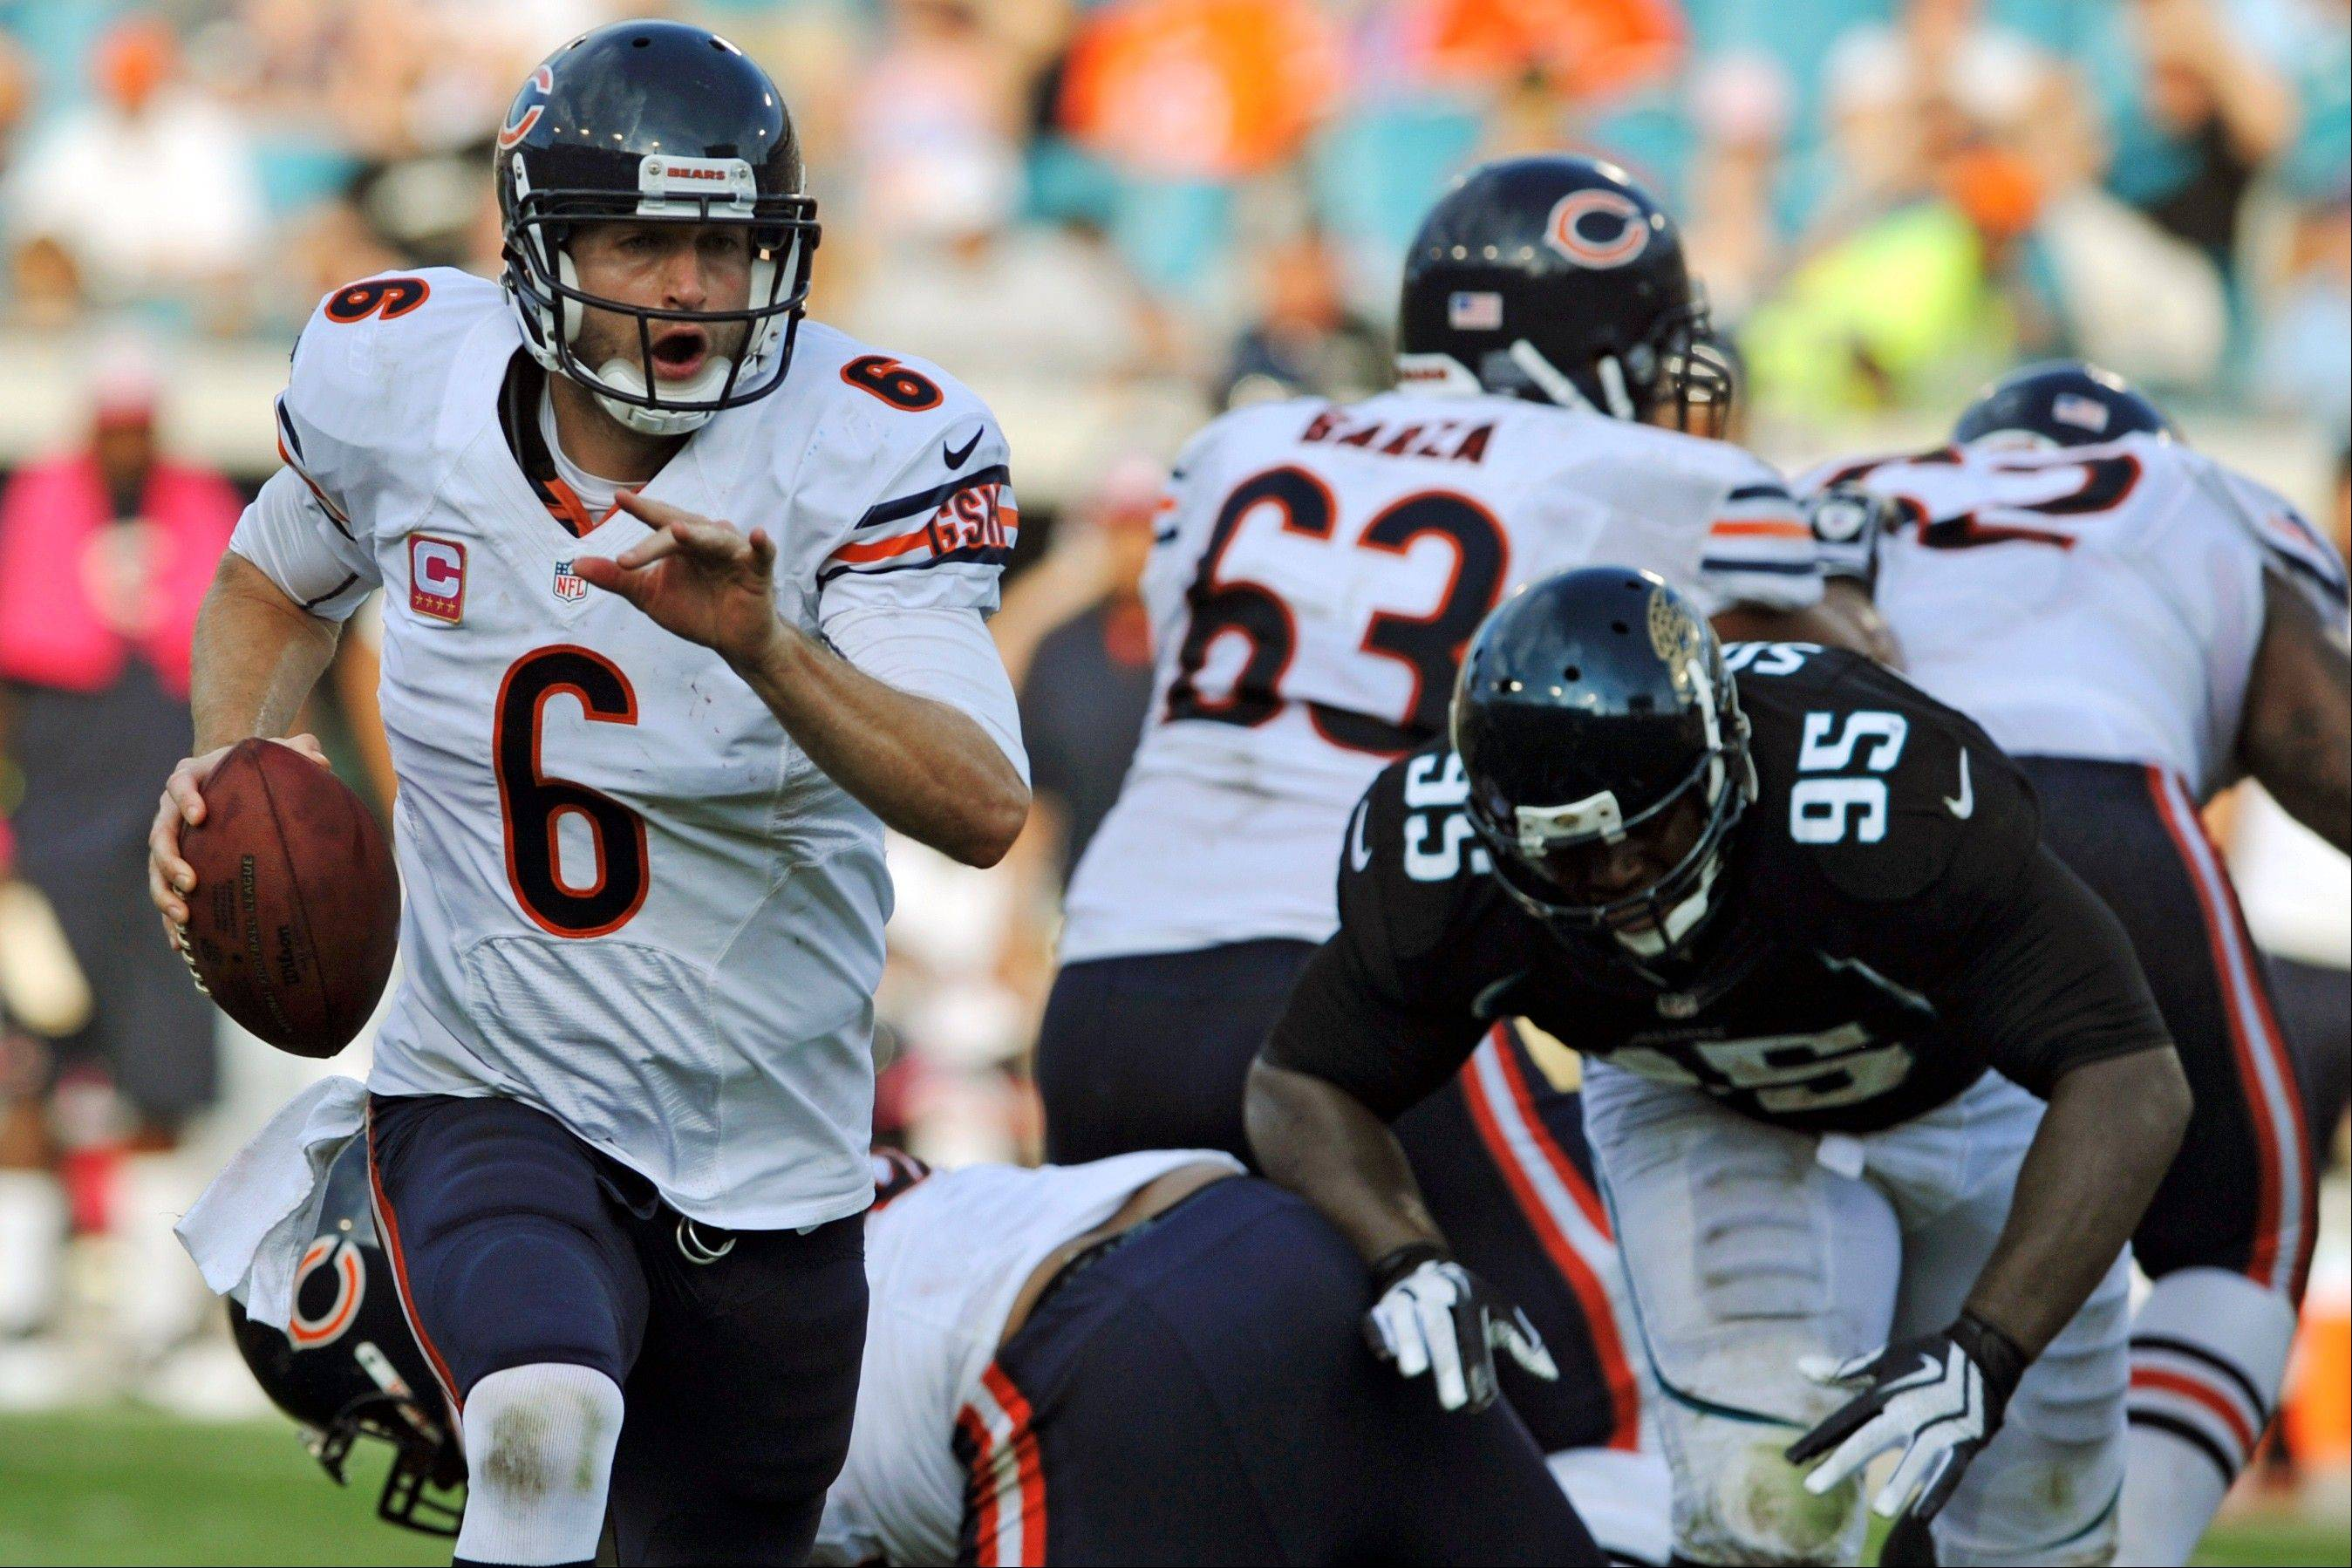 Jay Cutler (6) runs from the pocket as he is pressured by Jacksonville Jaguars defensive tackle D'Anthony Smith (95) during the second half of an NFL football game, Sunday, Oct. 7, 2012, in Jacksonville, Fla. The Bears won 41-3.